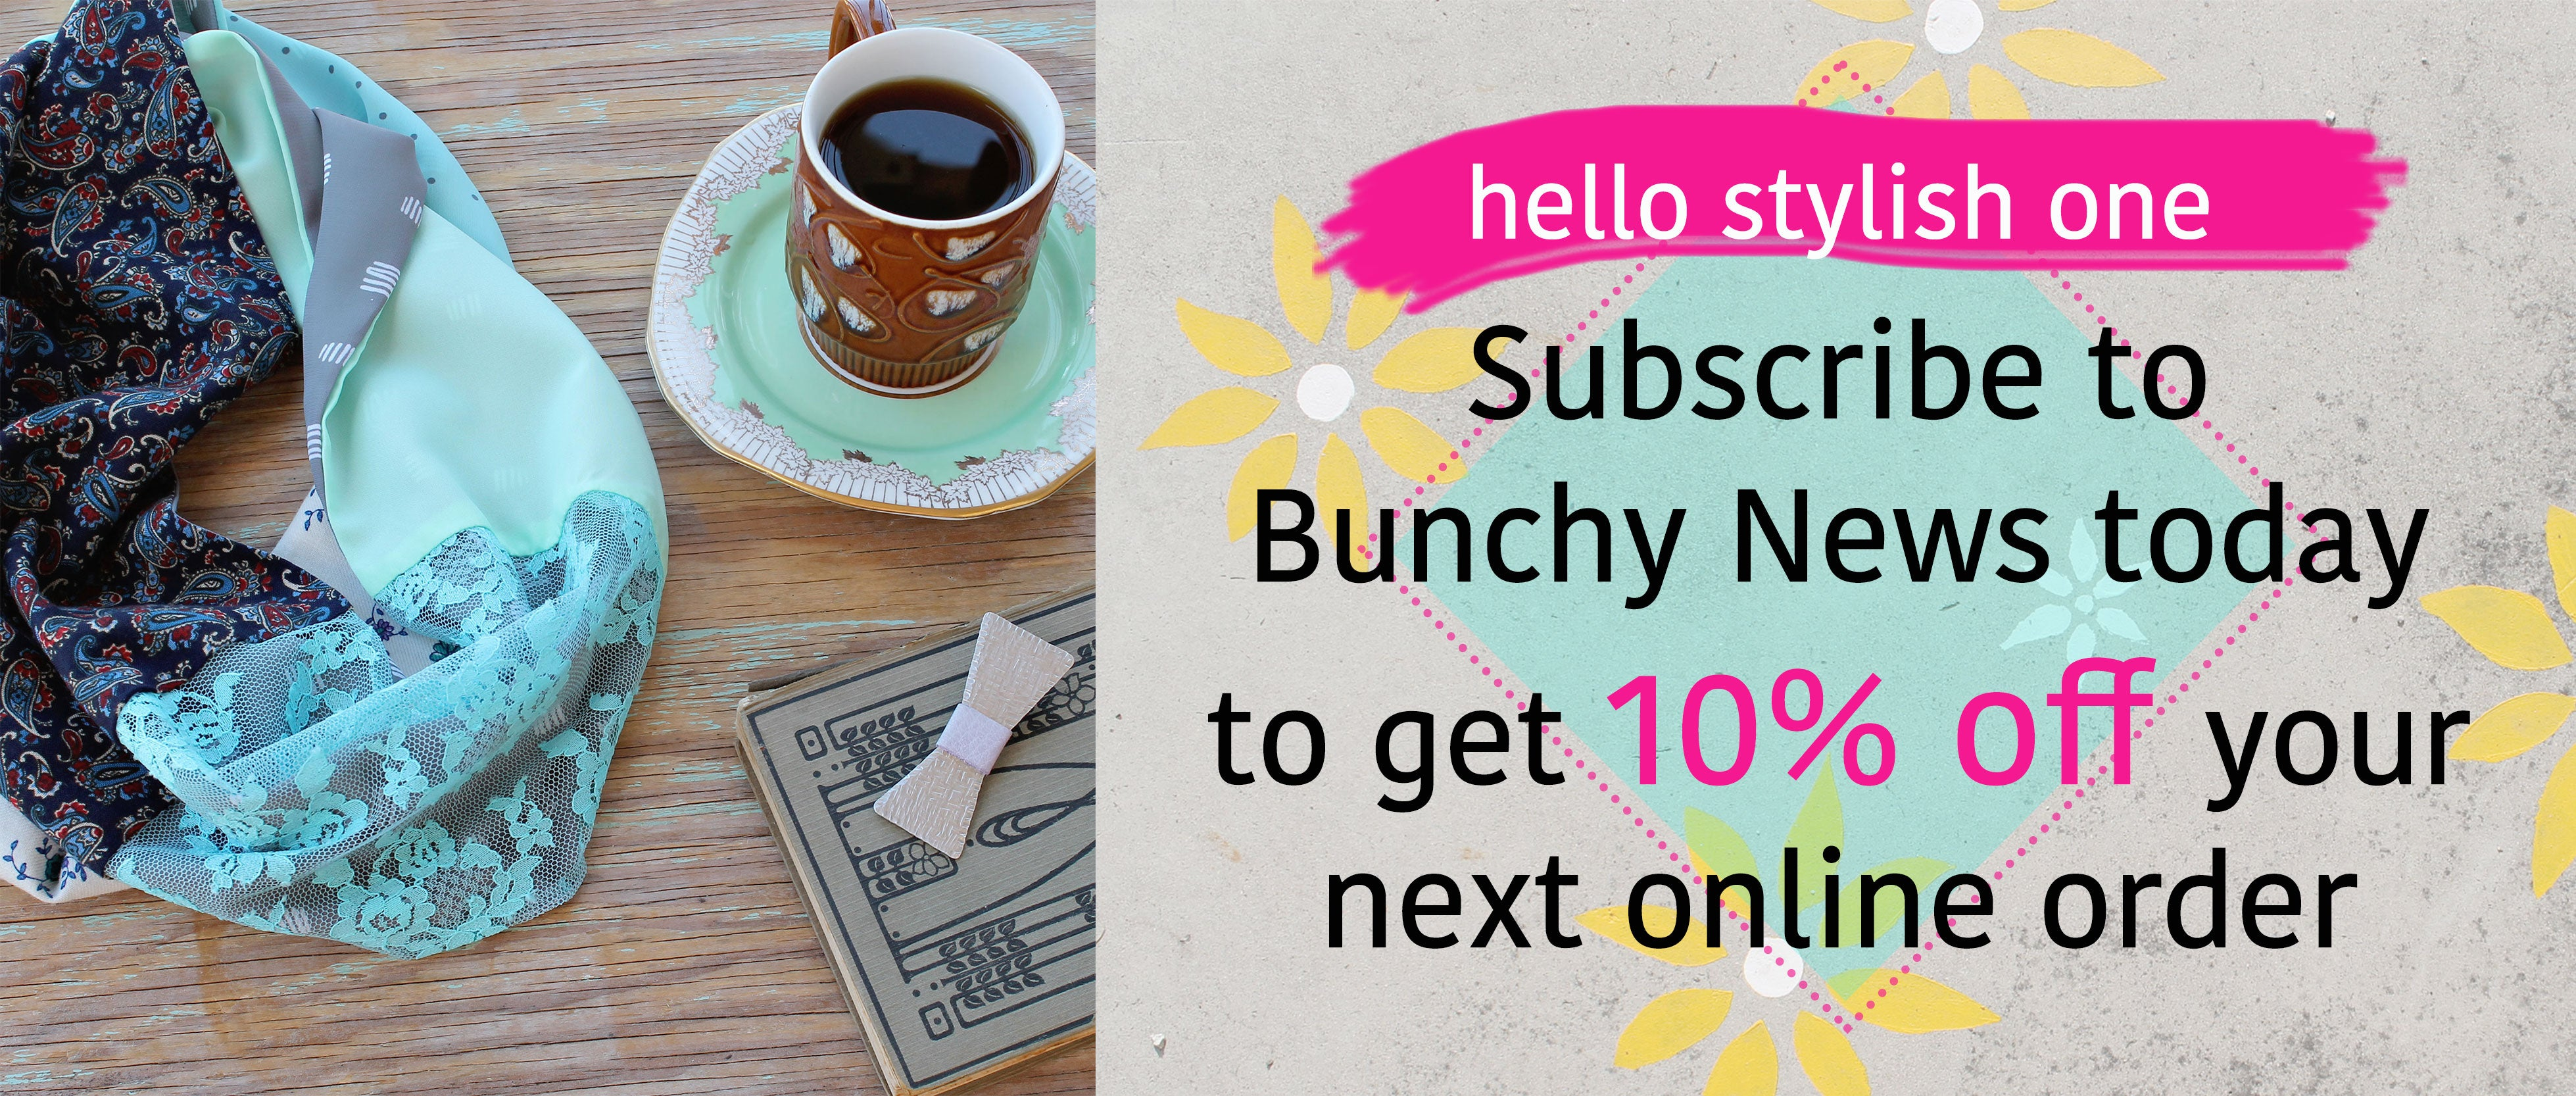 Join our Bunchy News mailing list to receive 10% off your next online order